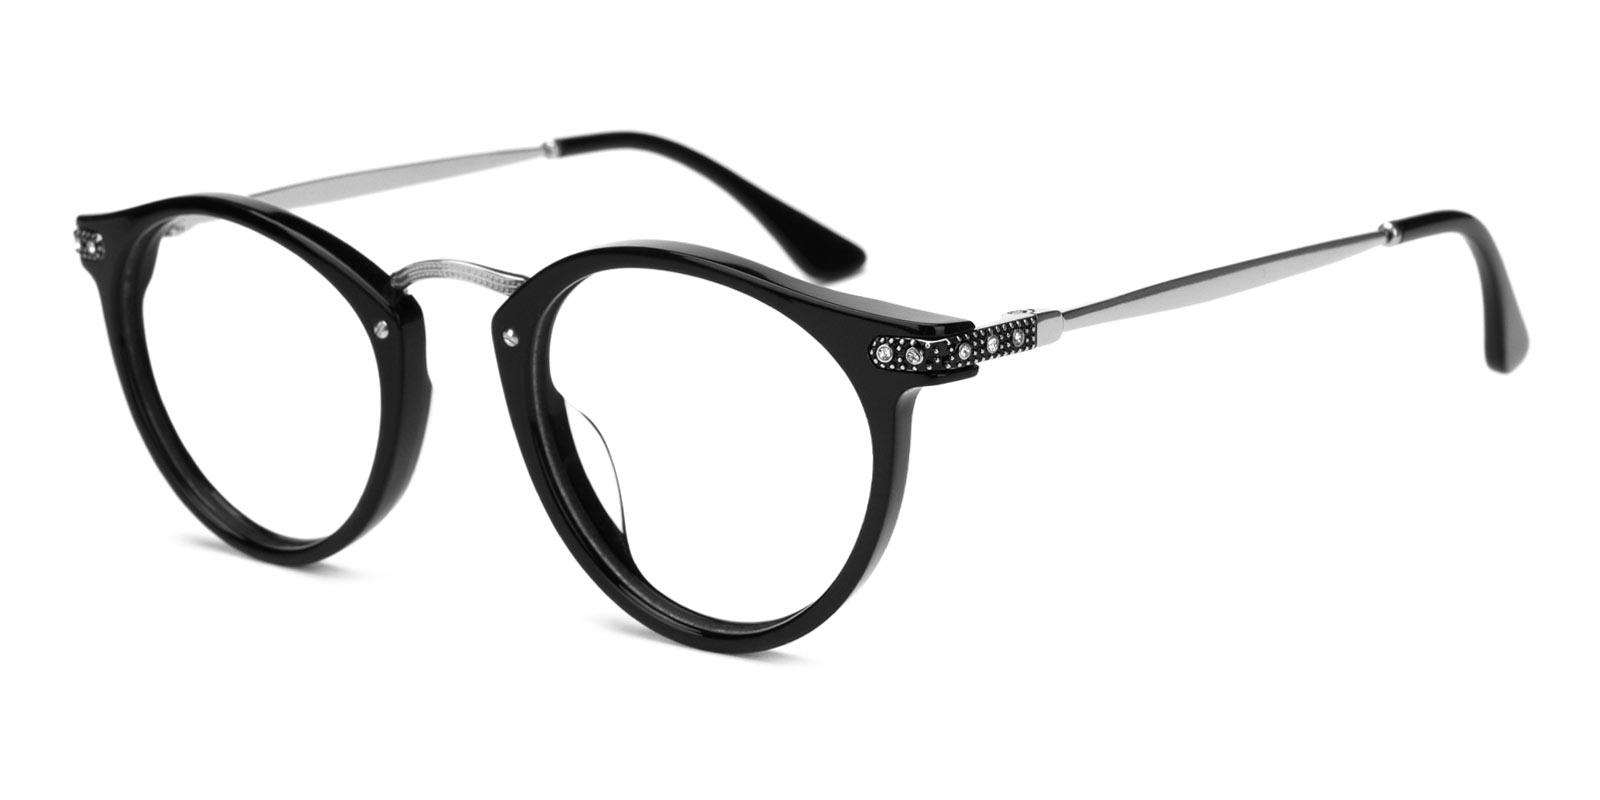 Donna-Silver-Round-Acetate-Eyeglasses-additional1